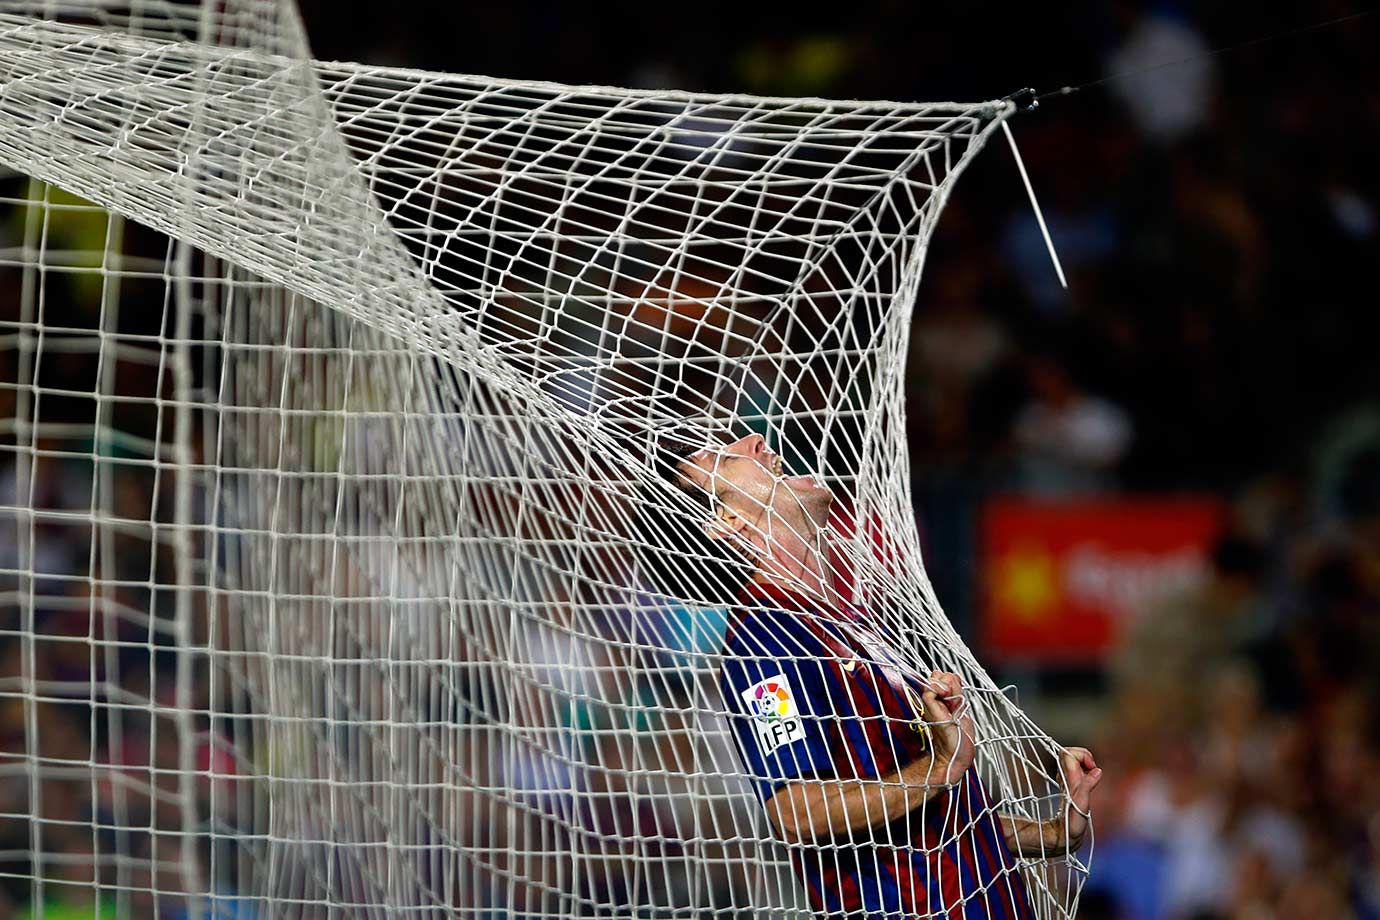 Barcelona's Lionel Messi reacts after scoring against Osasuna during their La Liga match on Sept. 17, 2011 at the Camp Nou stadium in Barcelona, Spain.